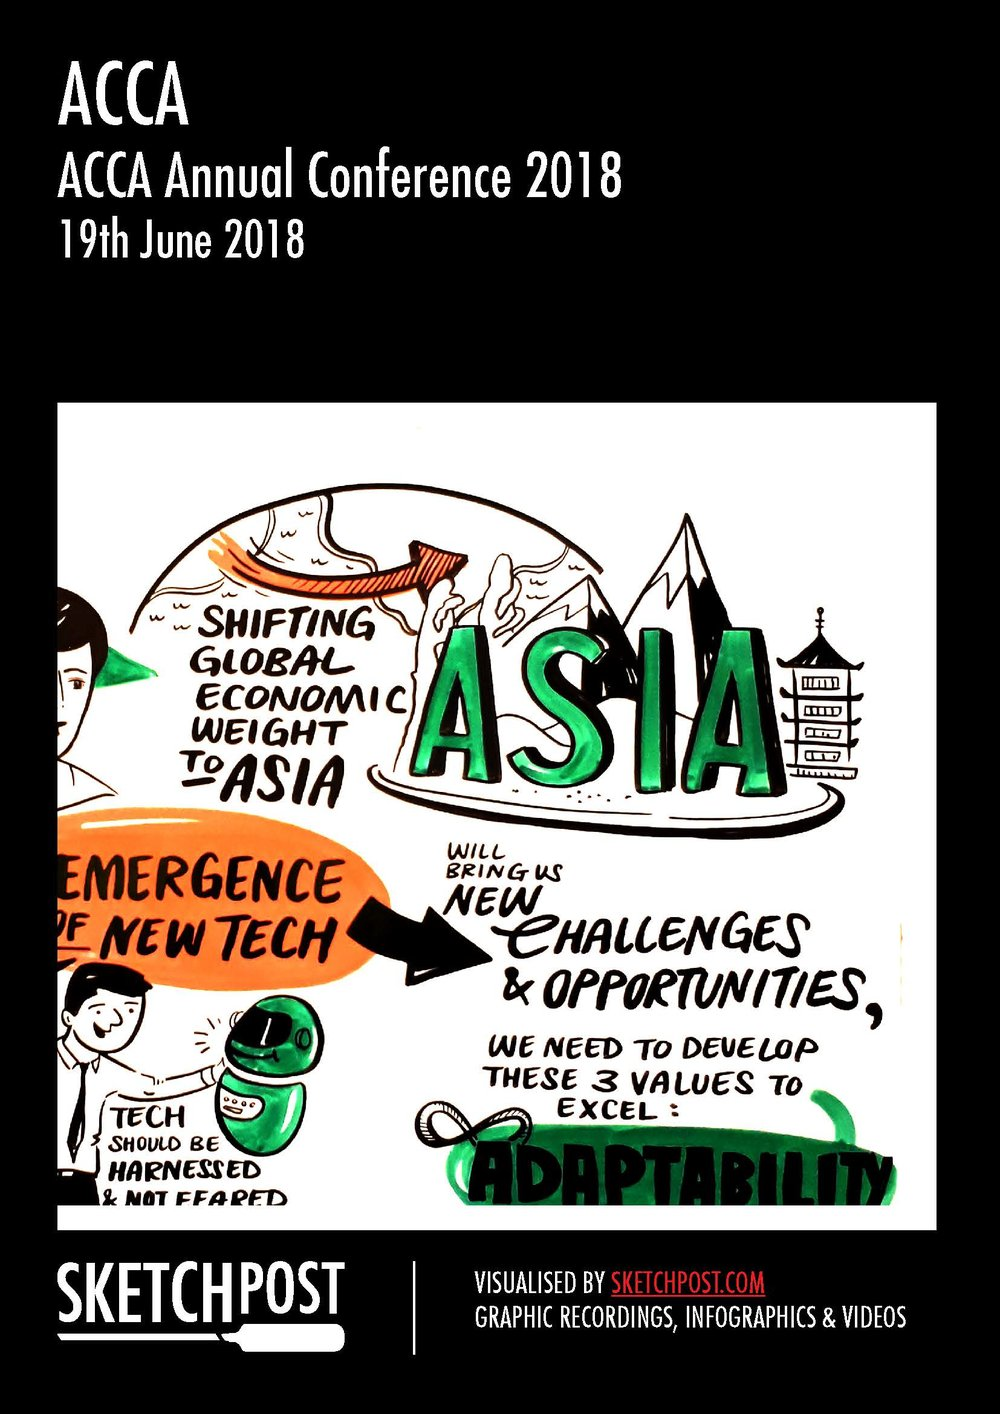 ACCA ANNUAL CONFERENCE 2018 sketchpost-digital-graphic-recording-infographic-video-singapore-malaysia-hong-kong